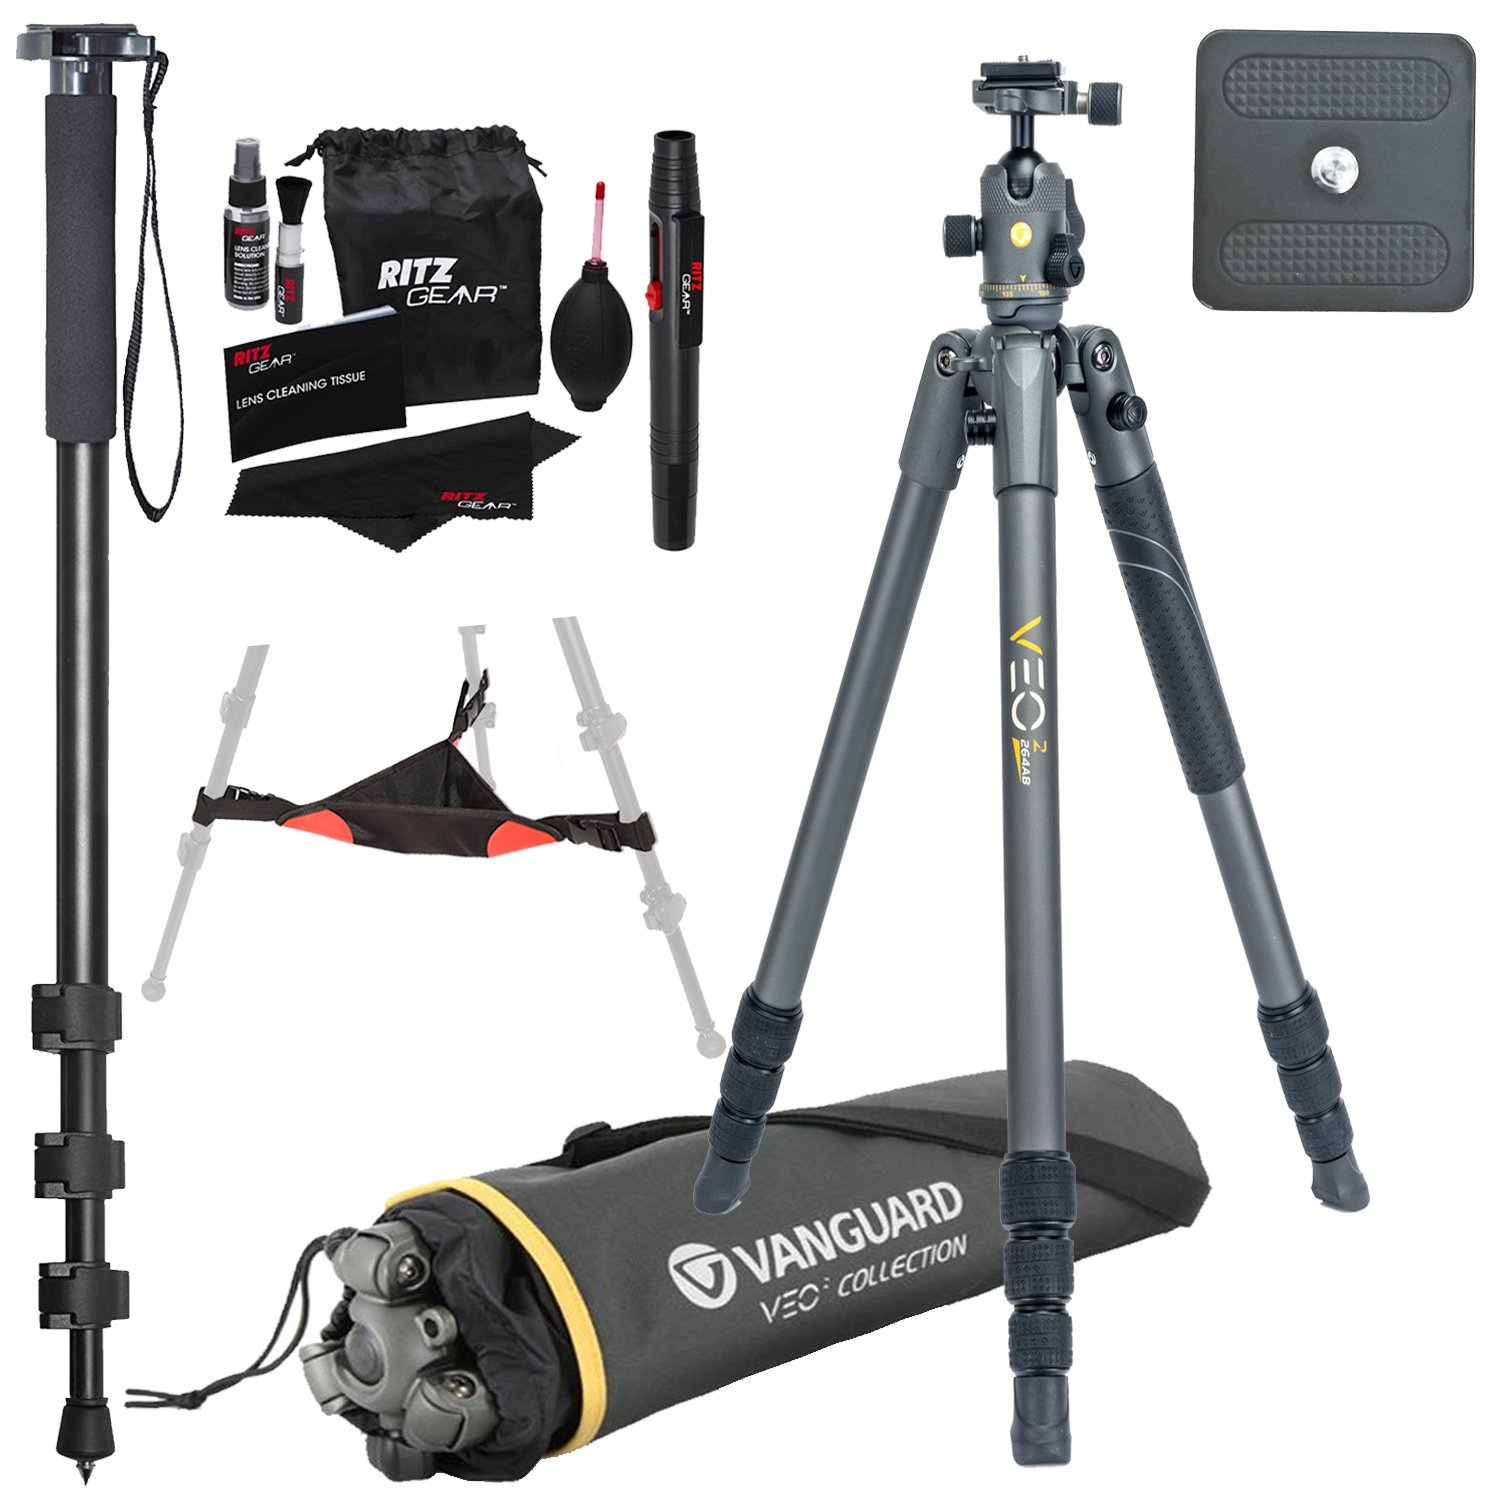 Vanguard VEO 2 264AB Aluminum Tripod with VEO 2 BH-50 Ball Head, Ritz Gear Tripod Stone Bag, 72-Inch Monopod with Quick Release and Ritz Gear Cleaning Kit